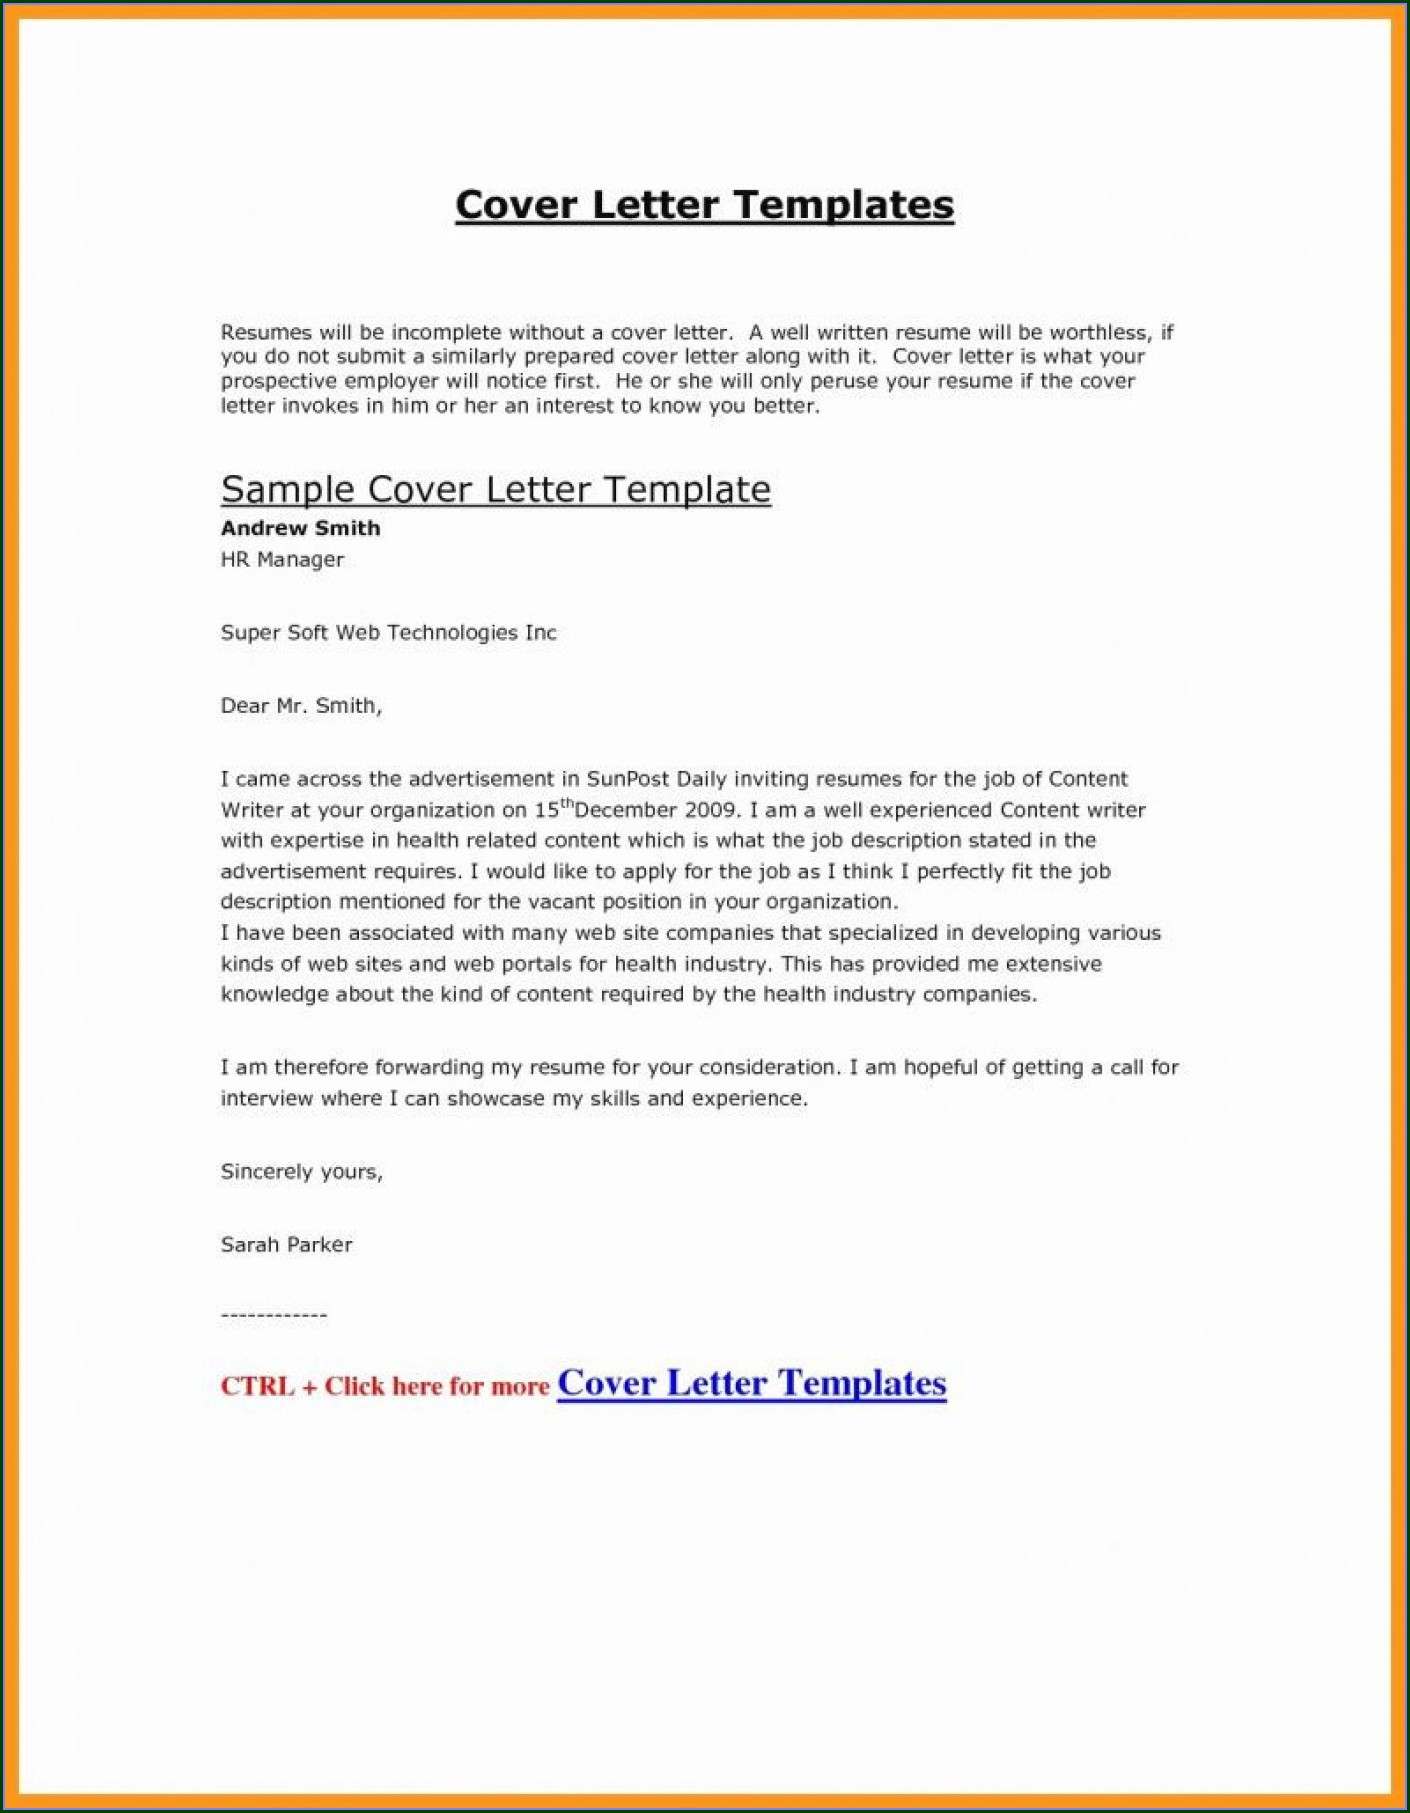 Prospecting Real Estate Letter Templates